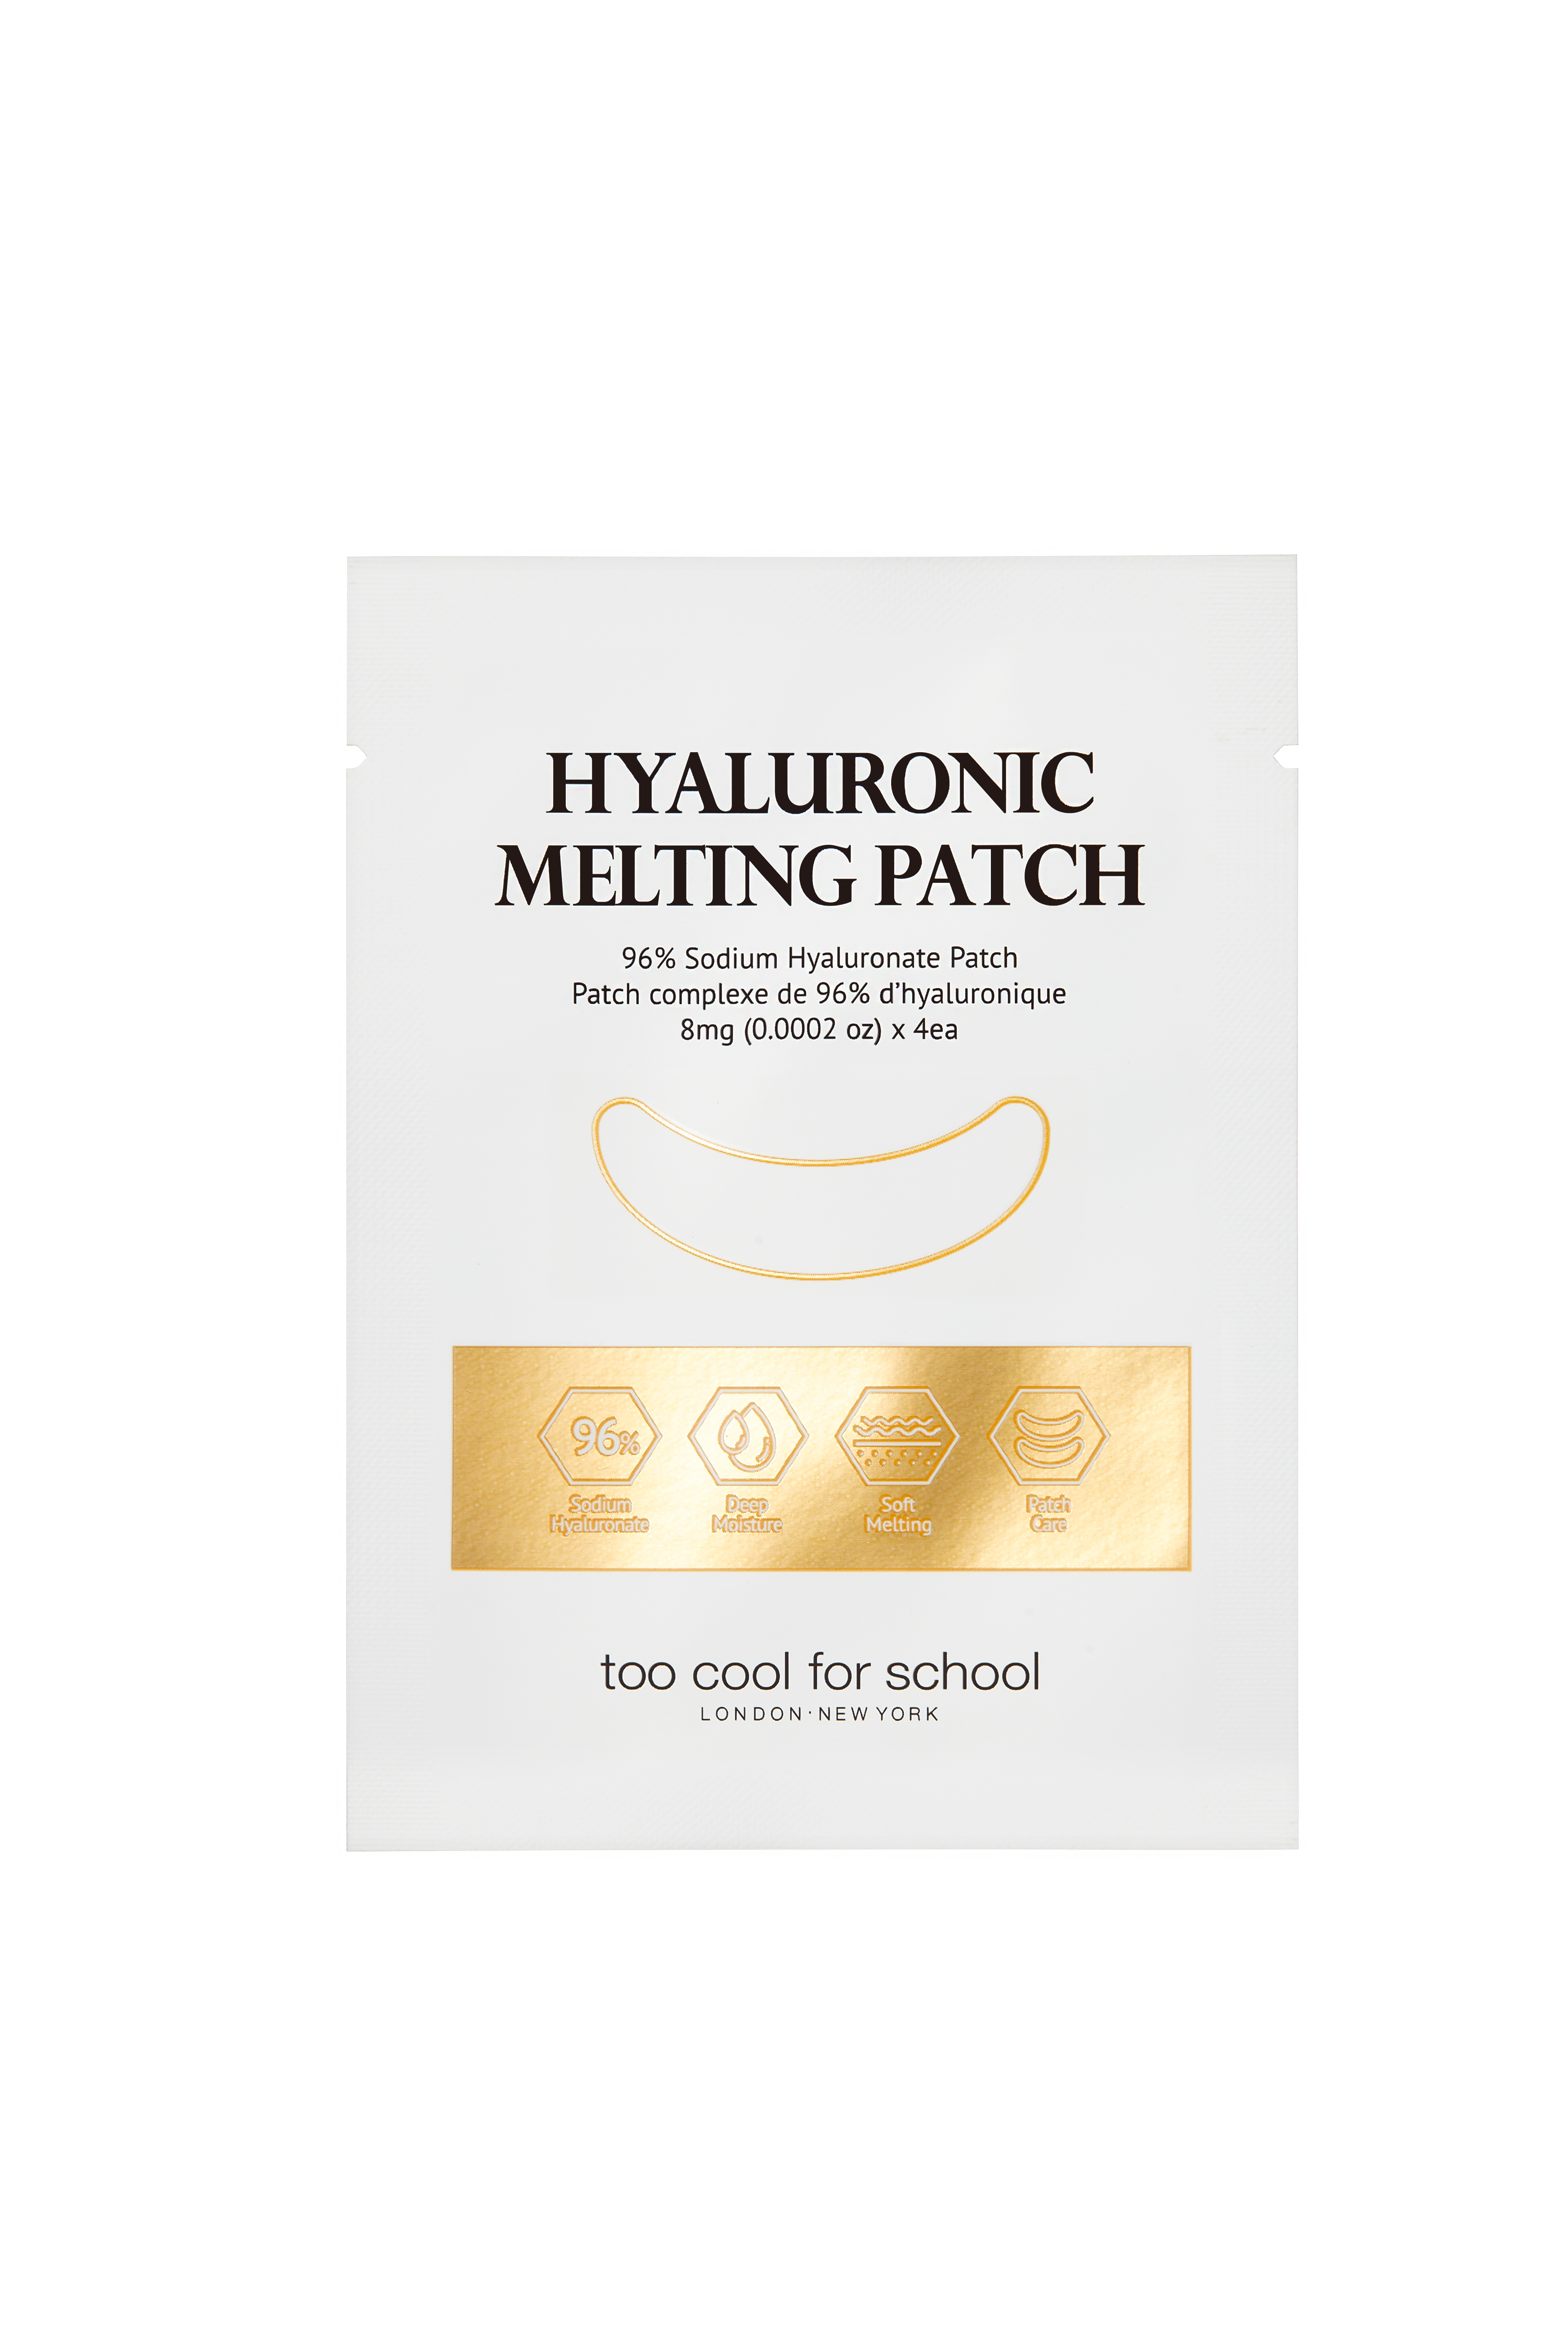 Egg Collagen Hyaluronic Melting Patch In 2020 Too Cool For School Collagen Patches